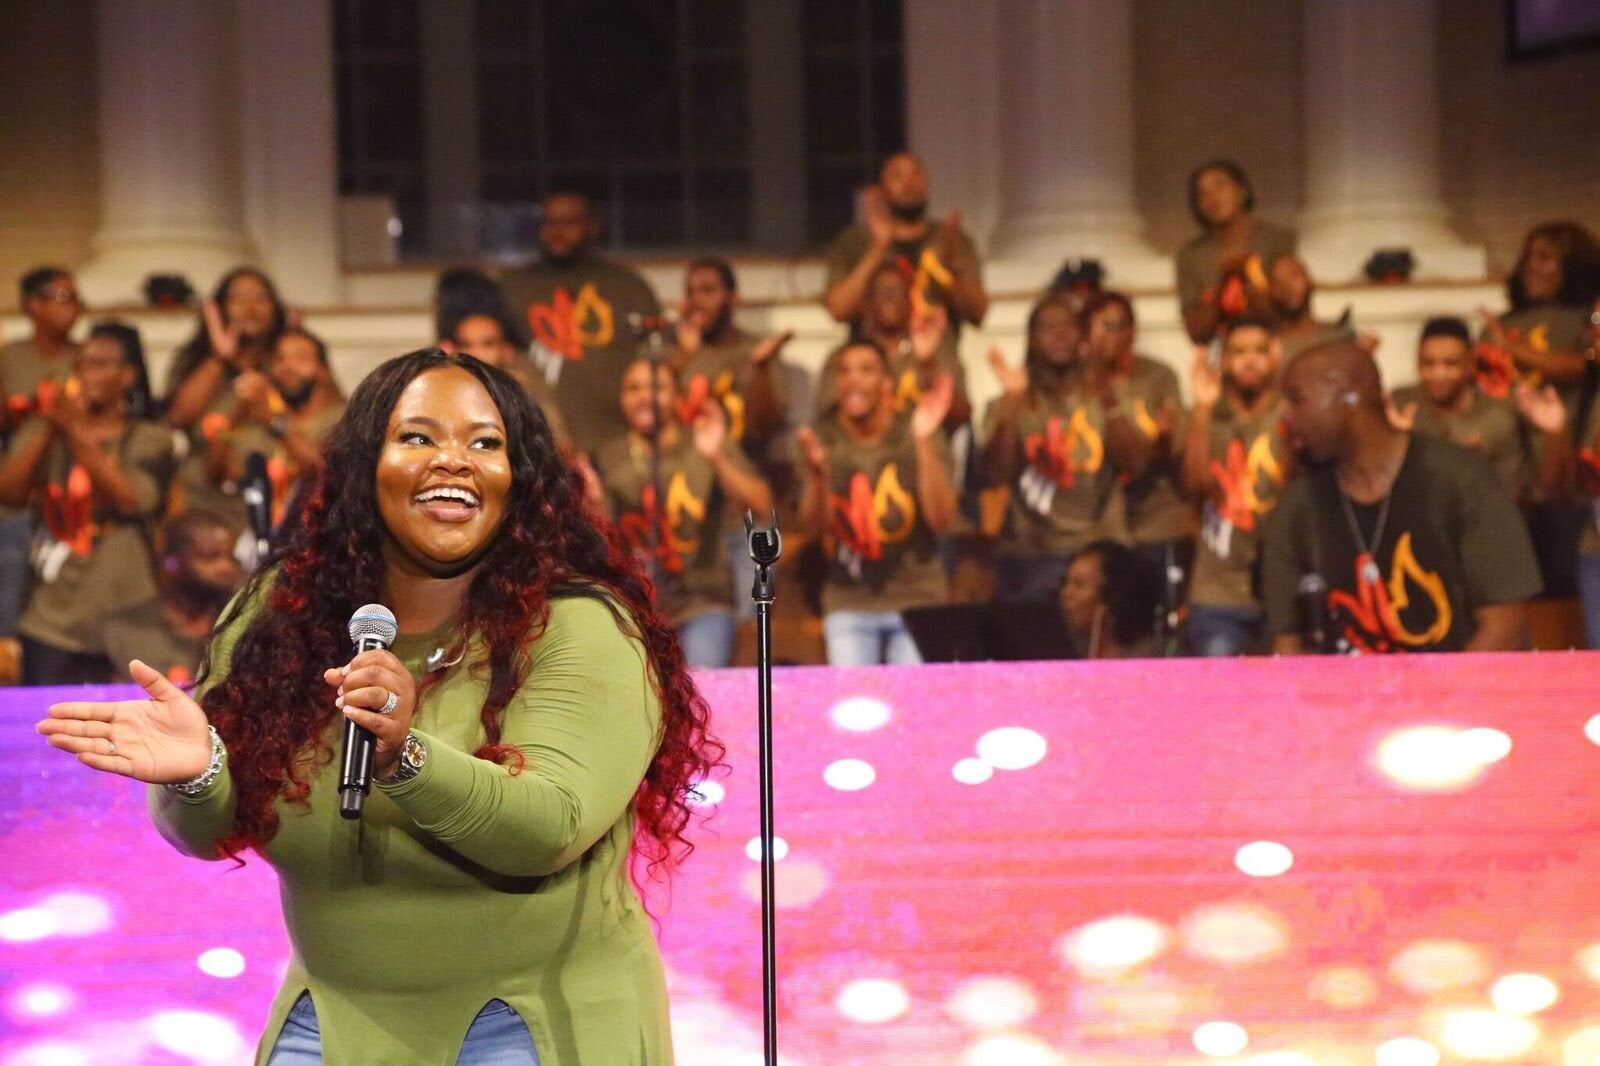 Policing Spirituality: Tasha Cobbs Leonard Speaks Out On Backlash From Song With Nicki Minaj